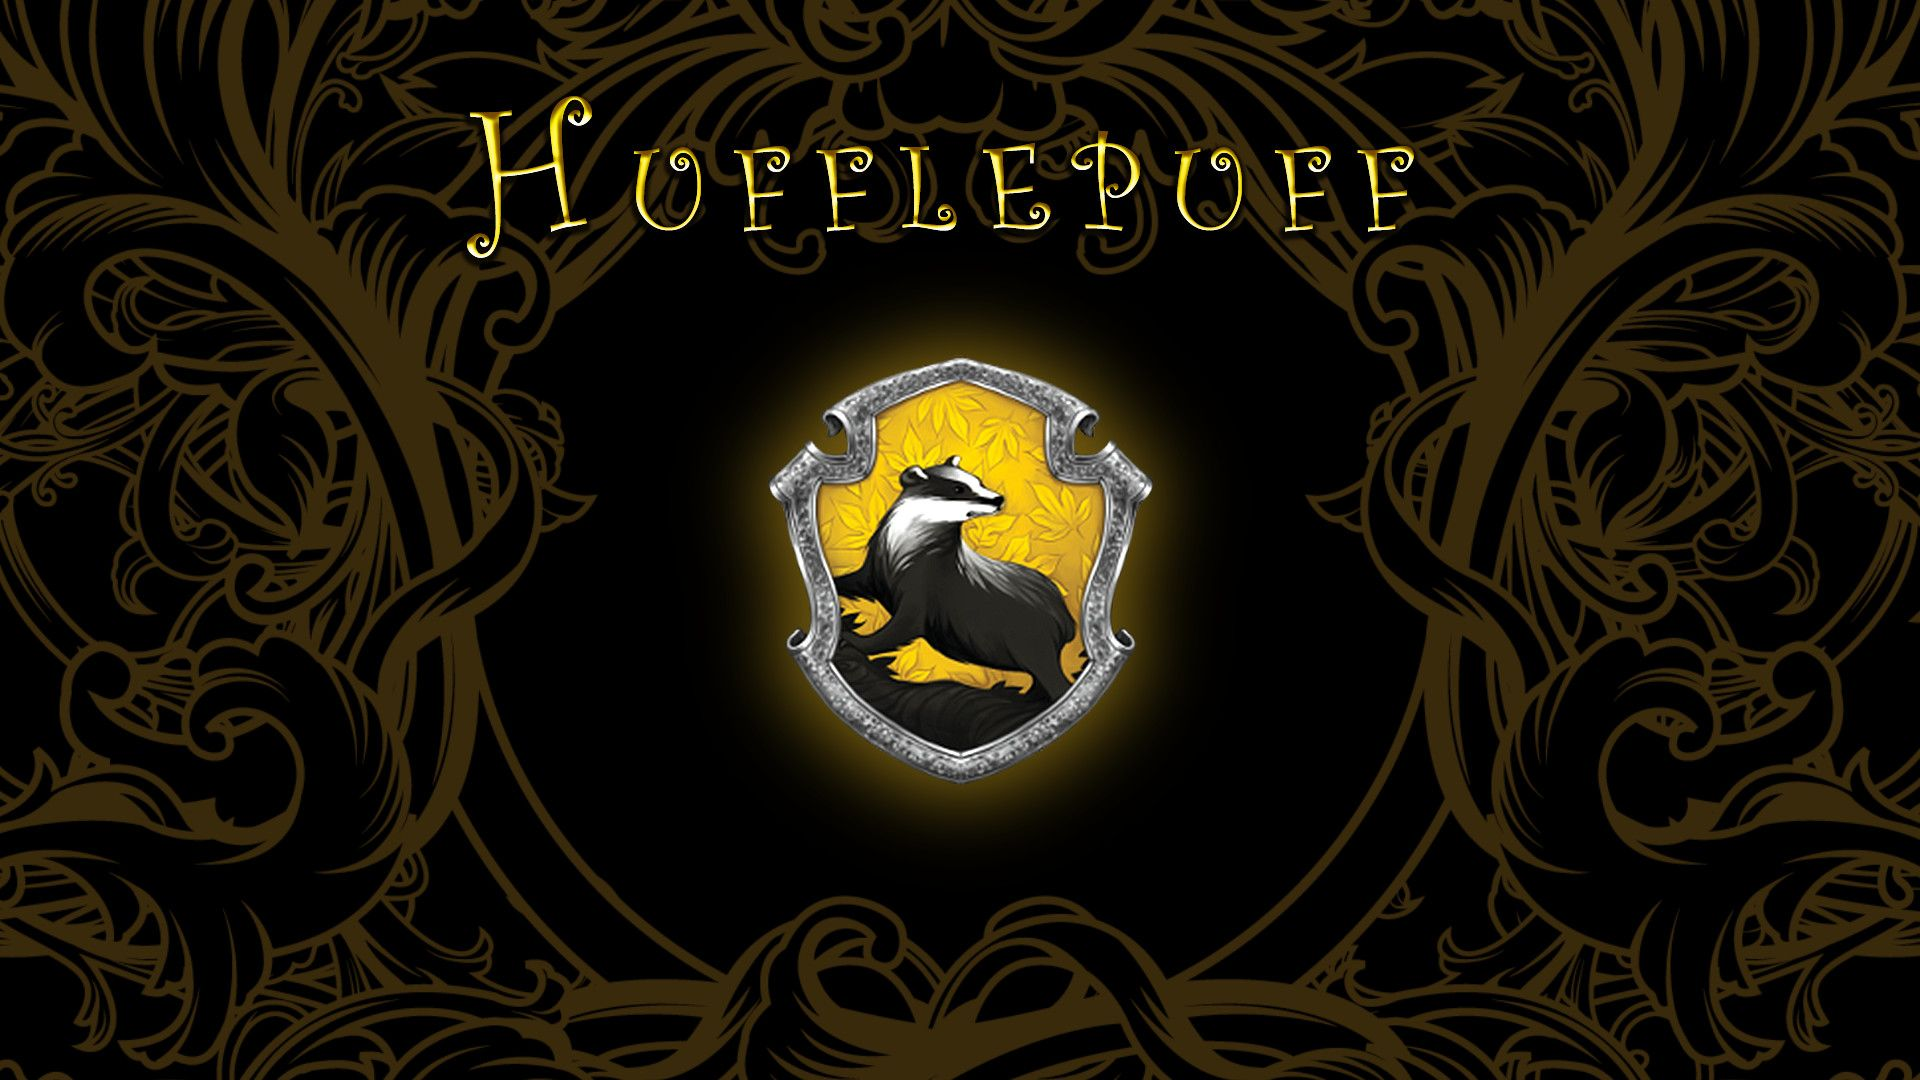 Scarf Hufflepuff iPhone Wallpapers - Top Free Scarf ...